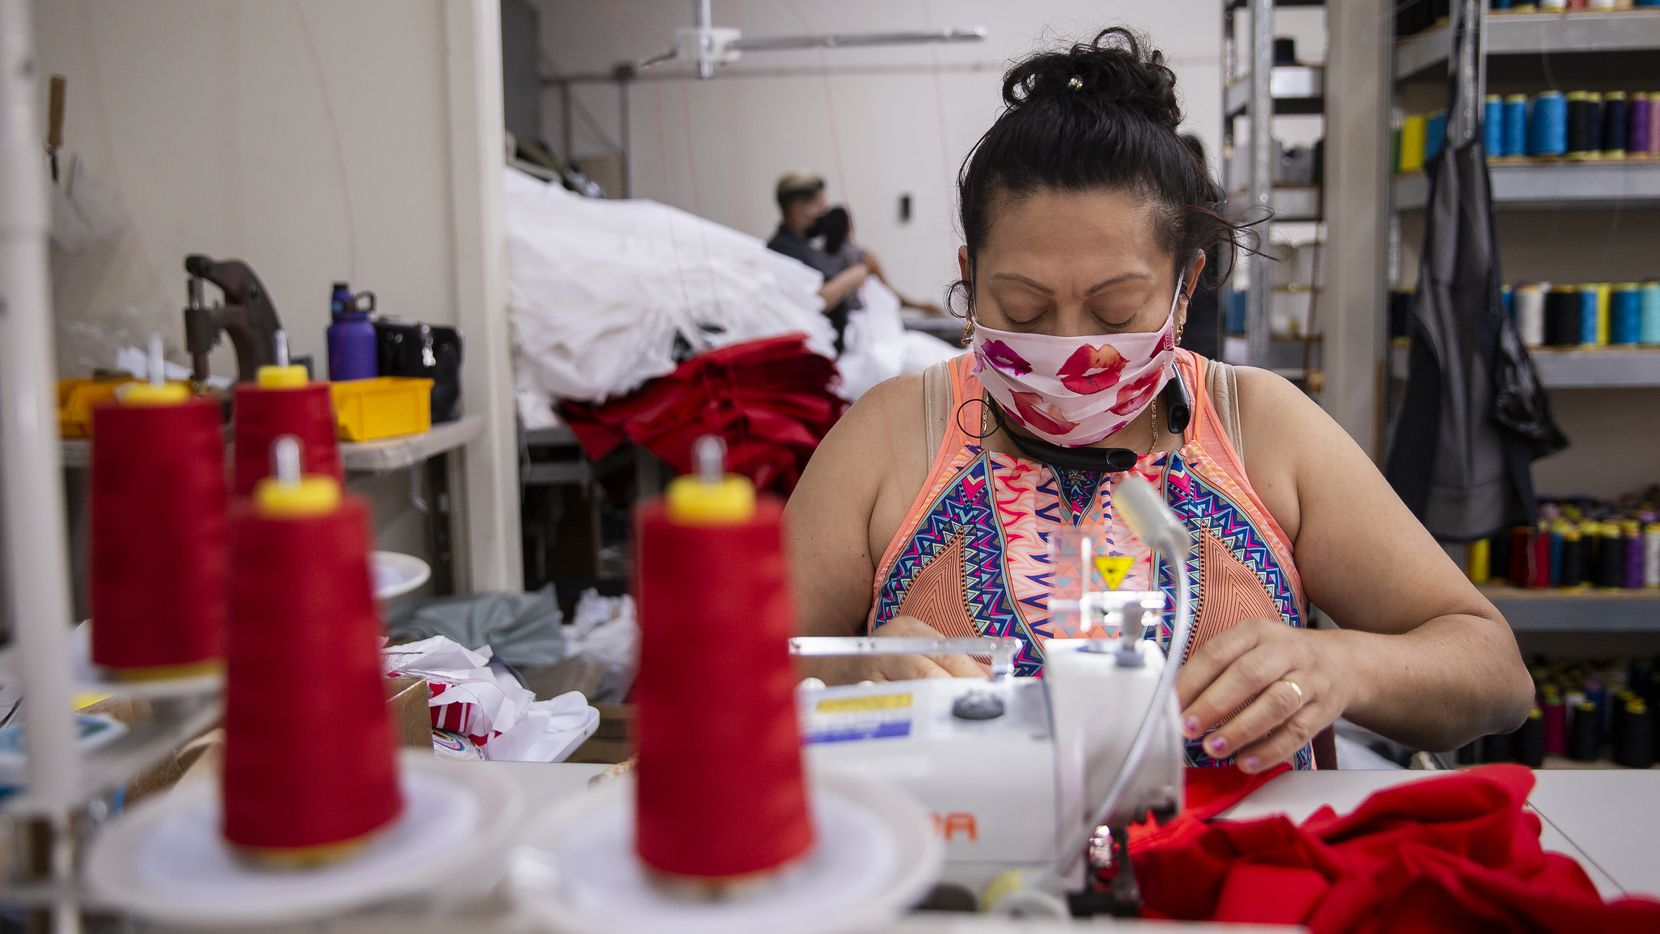 Seamstress Brenda Flores makes baby bloomers while wearing a mask at T&Q Cutting Services on May 2, 2020 in Dallas. Owner Rudy Romero has been helping supply hospitals and others with PPE such as face masks and gowns.